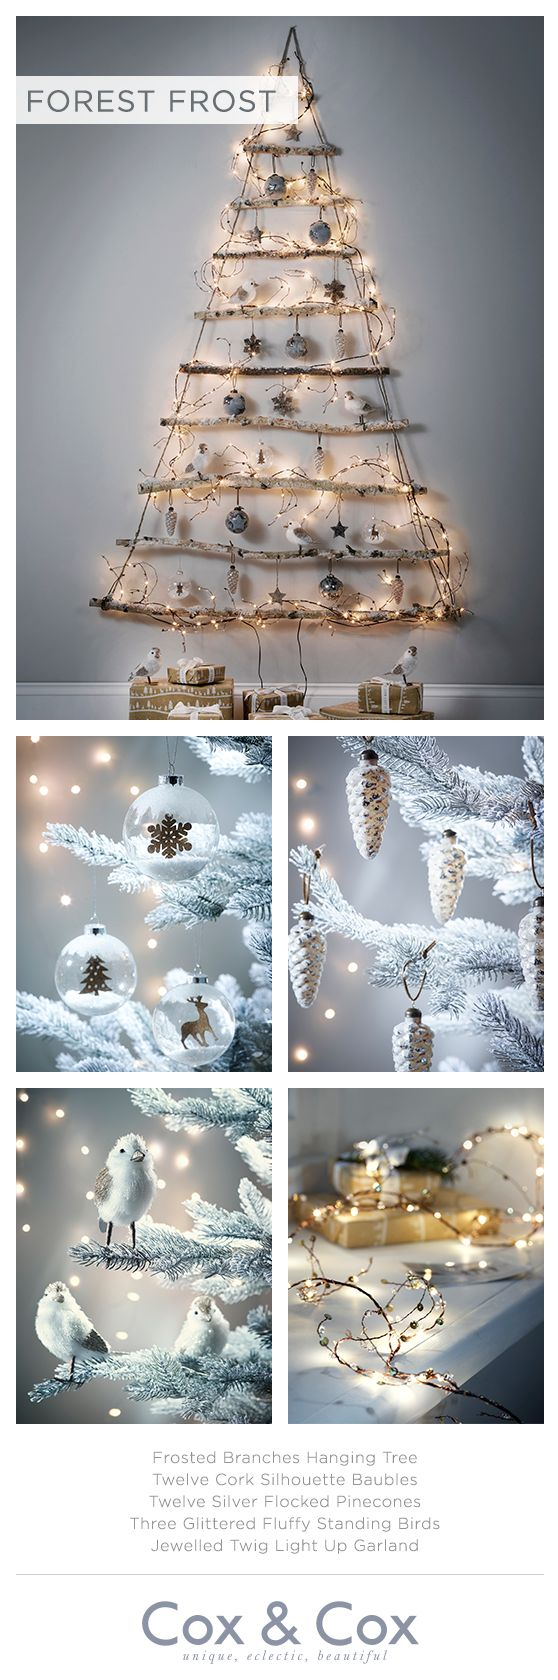 best images about christmas crafts on pinterest trees